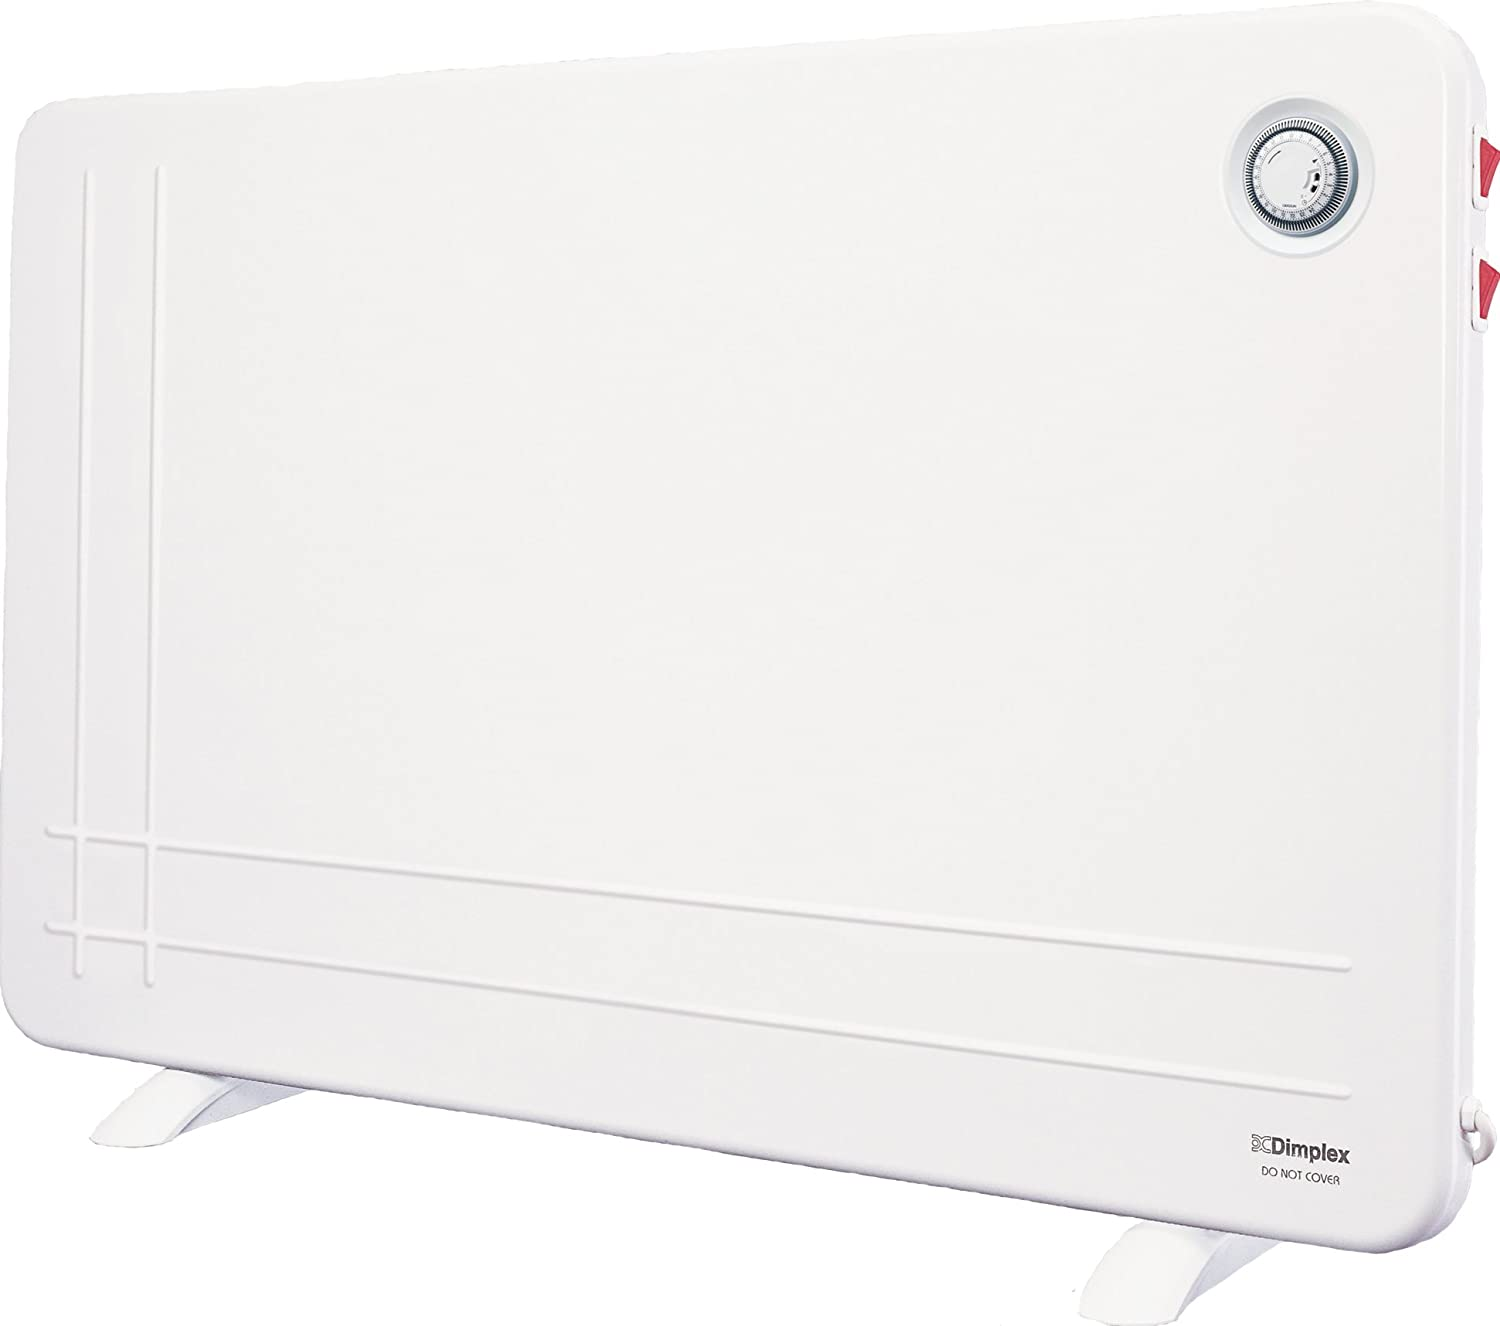 Dimplex 400 W Low Wattage Electric Panel Heater DXLWP400 Heating Products Oil Filled Heaters heating panel